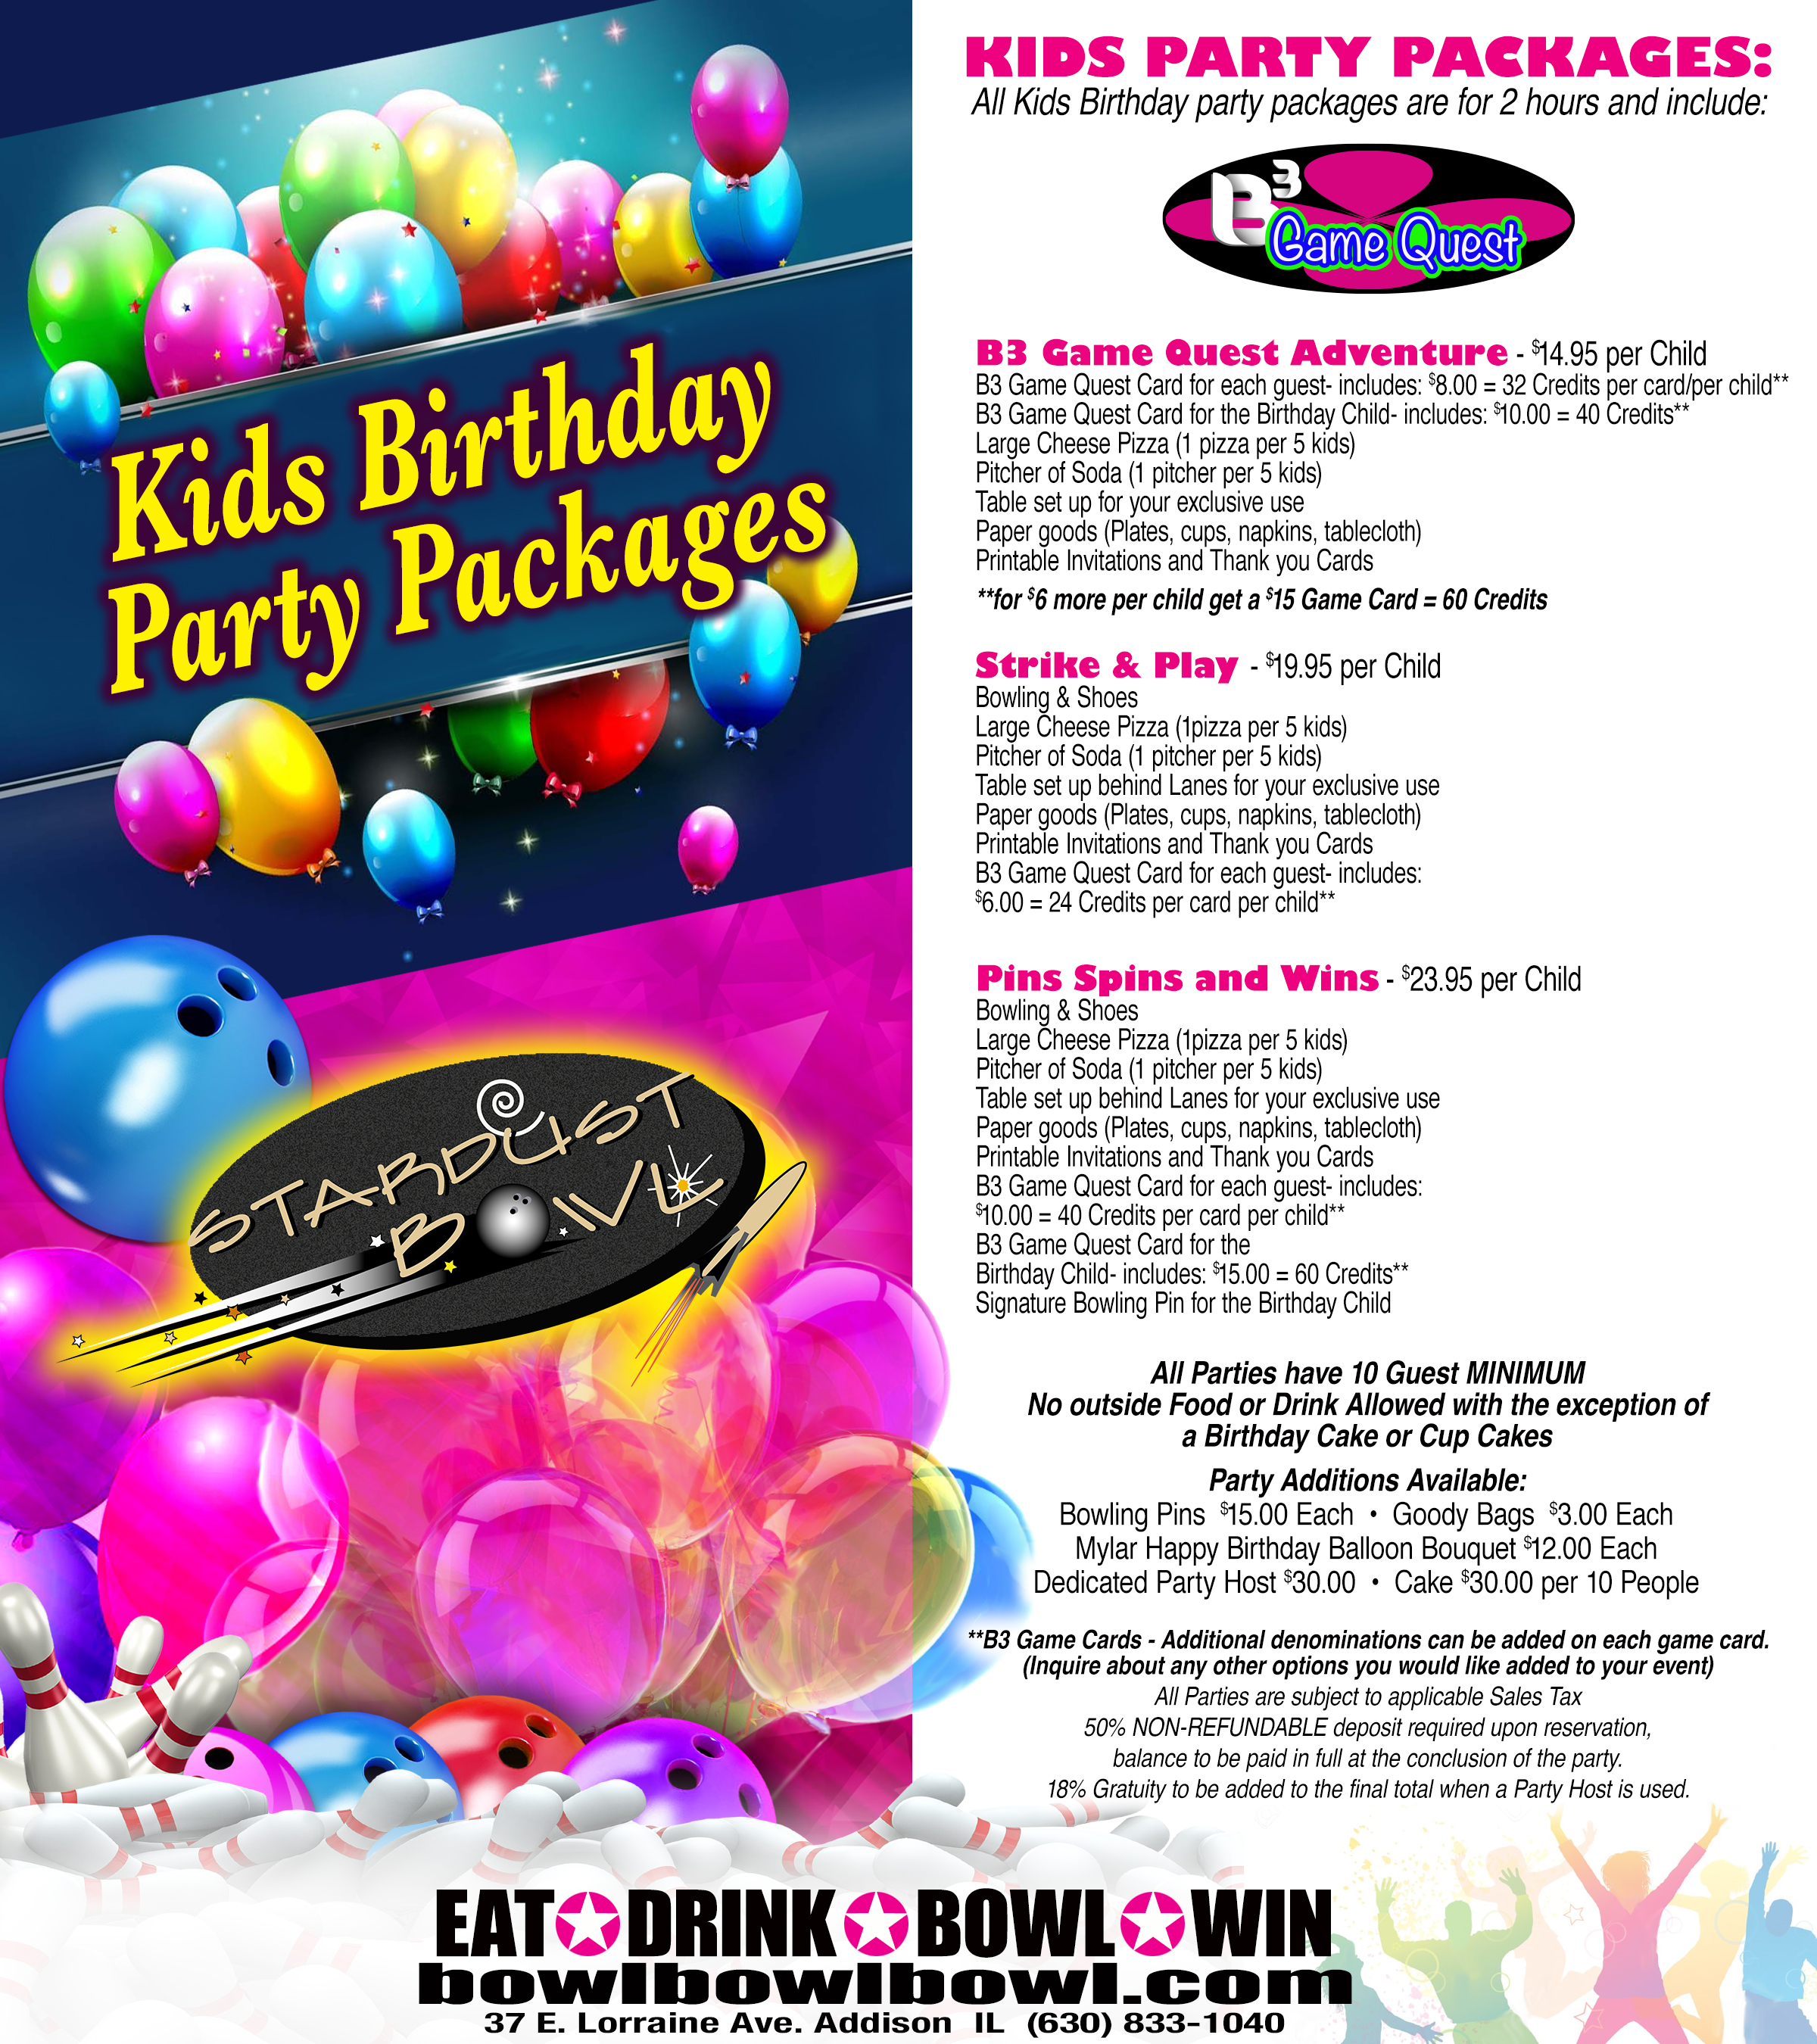 Kids Birthday Parties | Stardust Bowl | Bowling Parties in Addison, IL